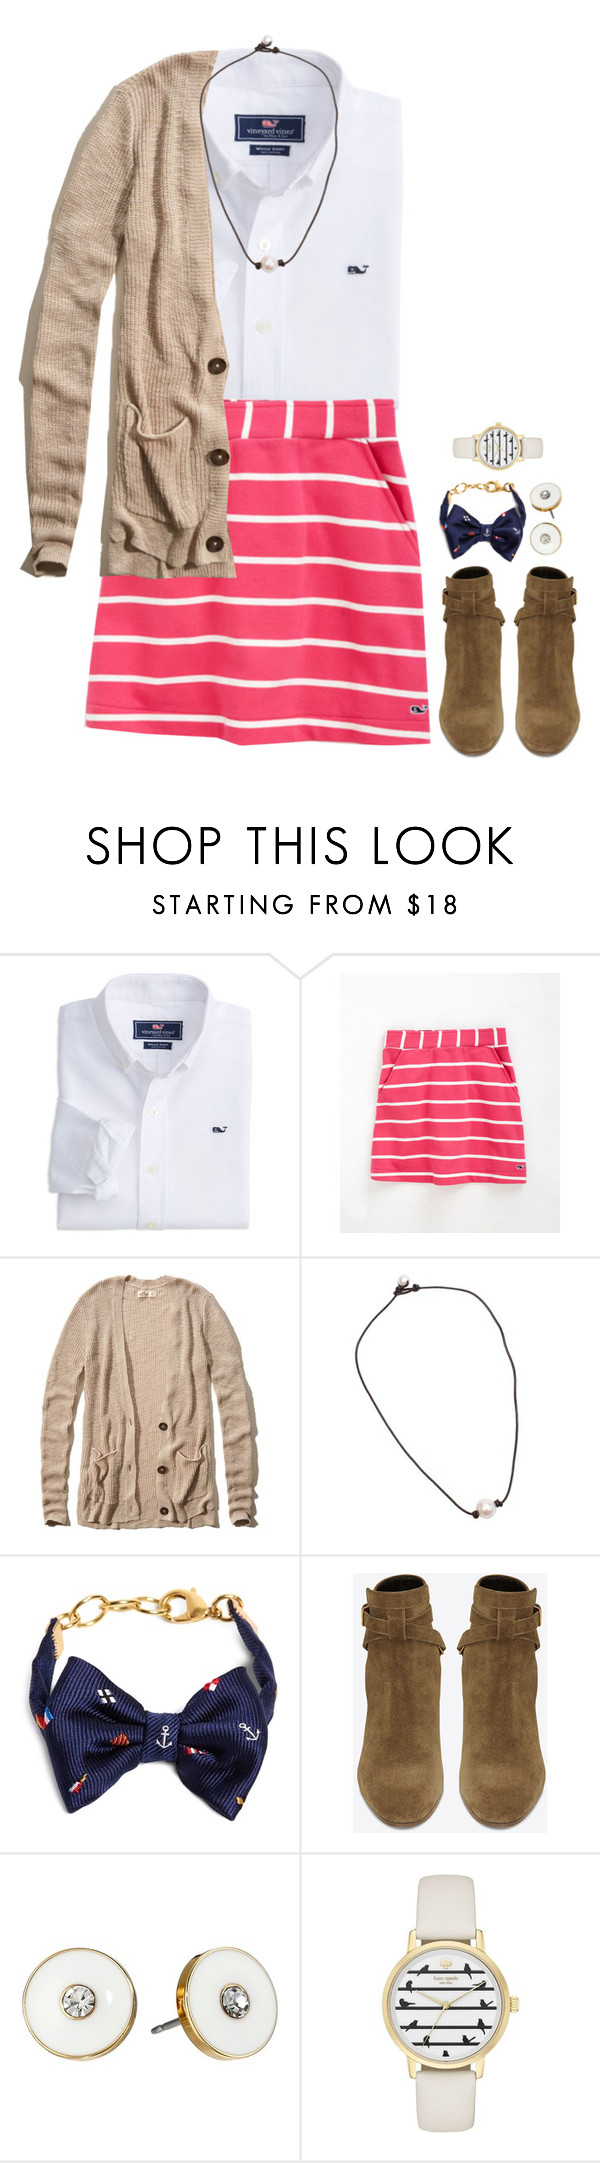 """Basketball banquet tonight"" by meganjoleen ❤ liked on Polyvore featuring Vineyard Vines, Hollister Co., Brooks Brothers, Yves Saint Laurent and Kate Spade"